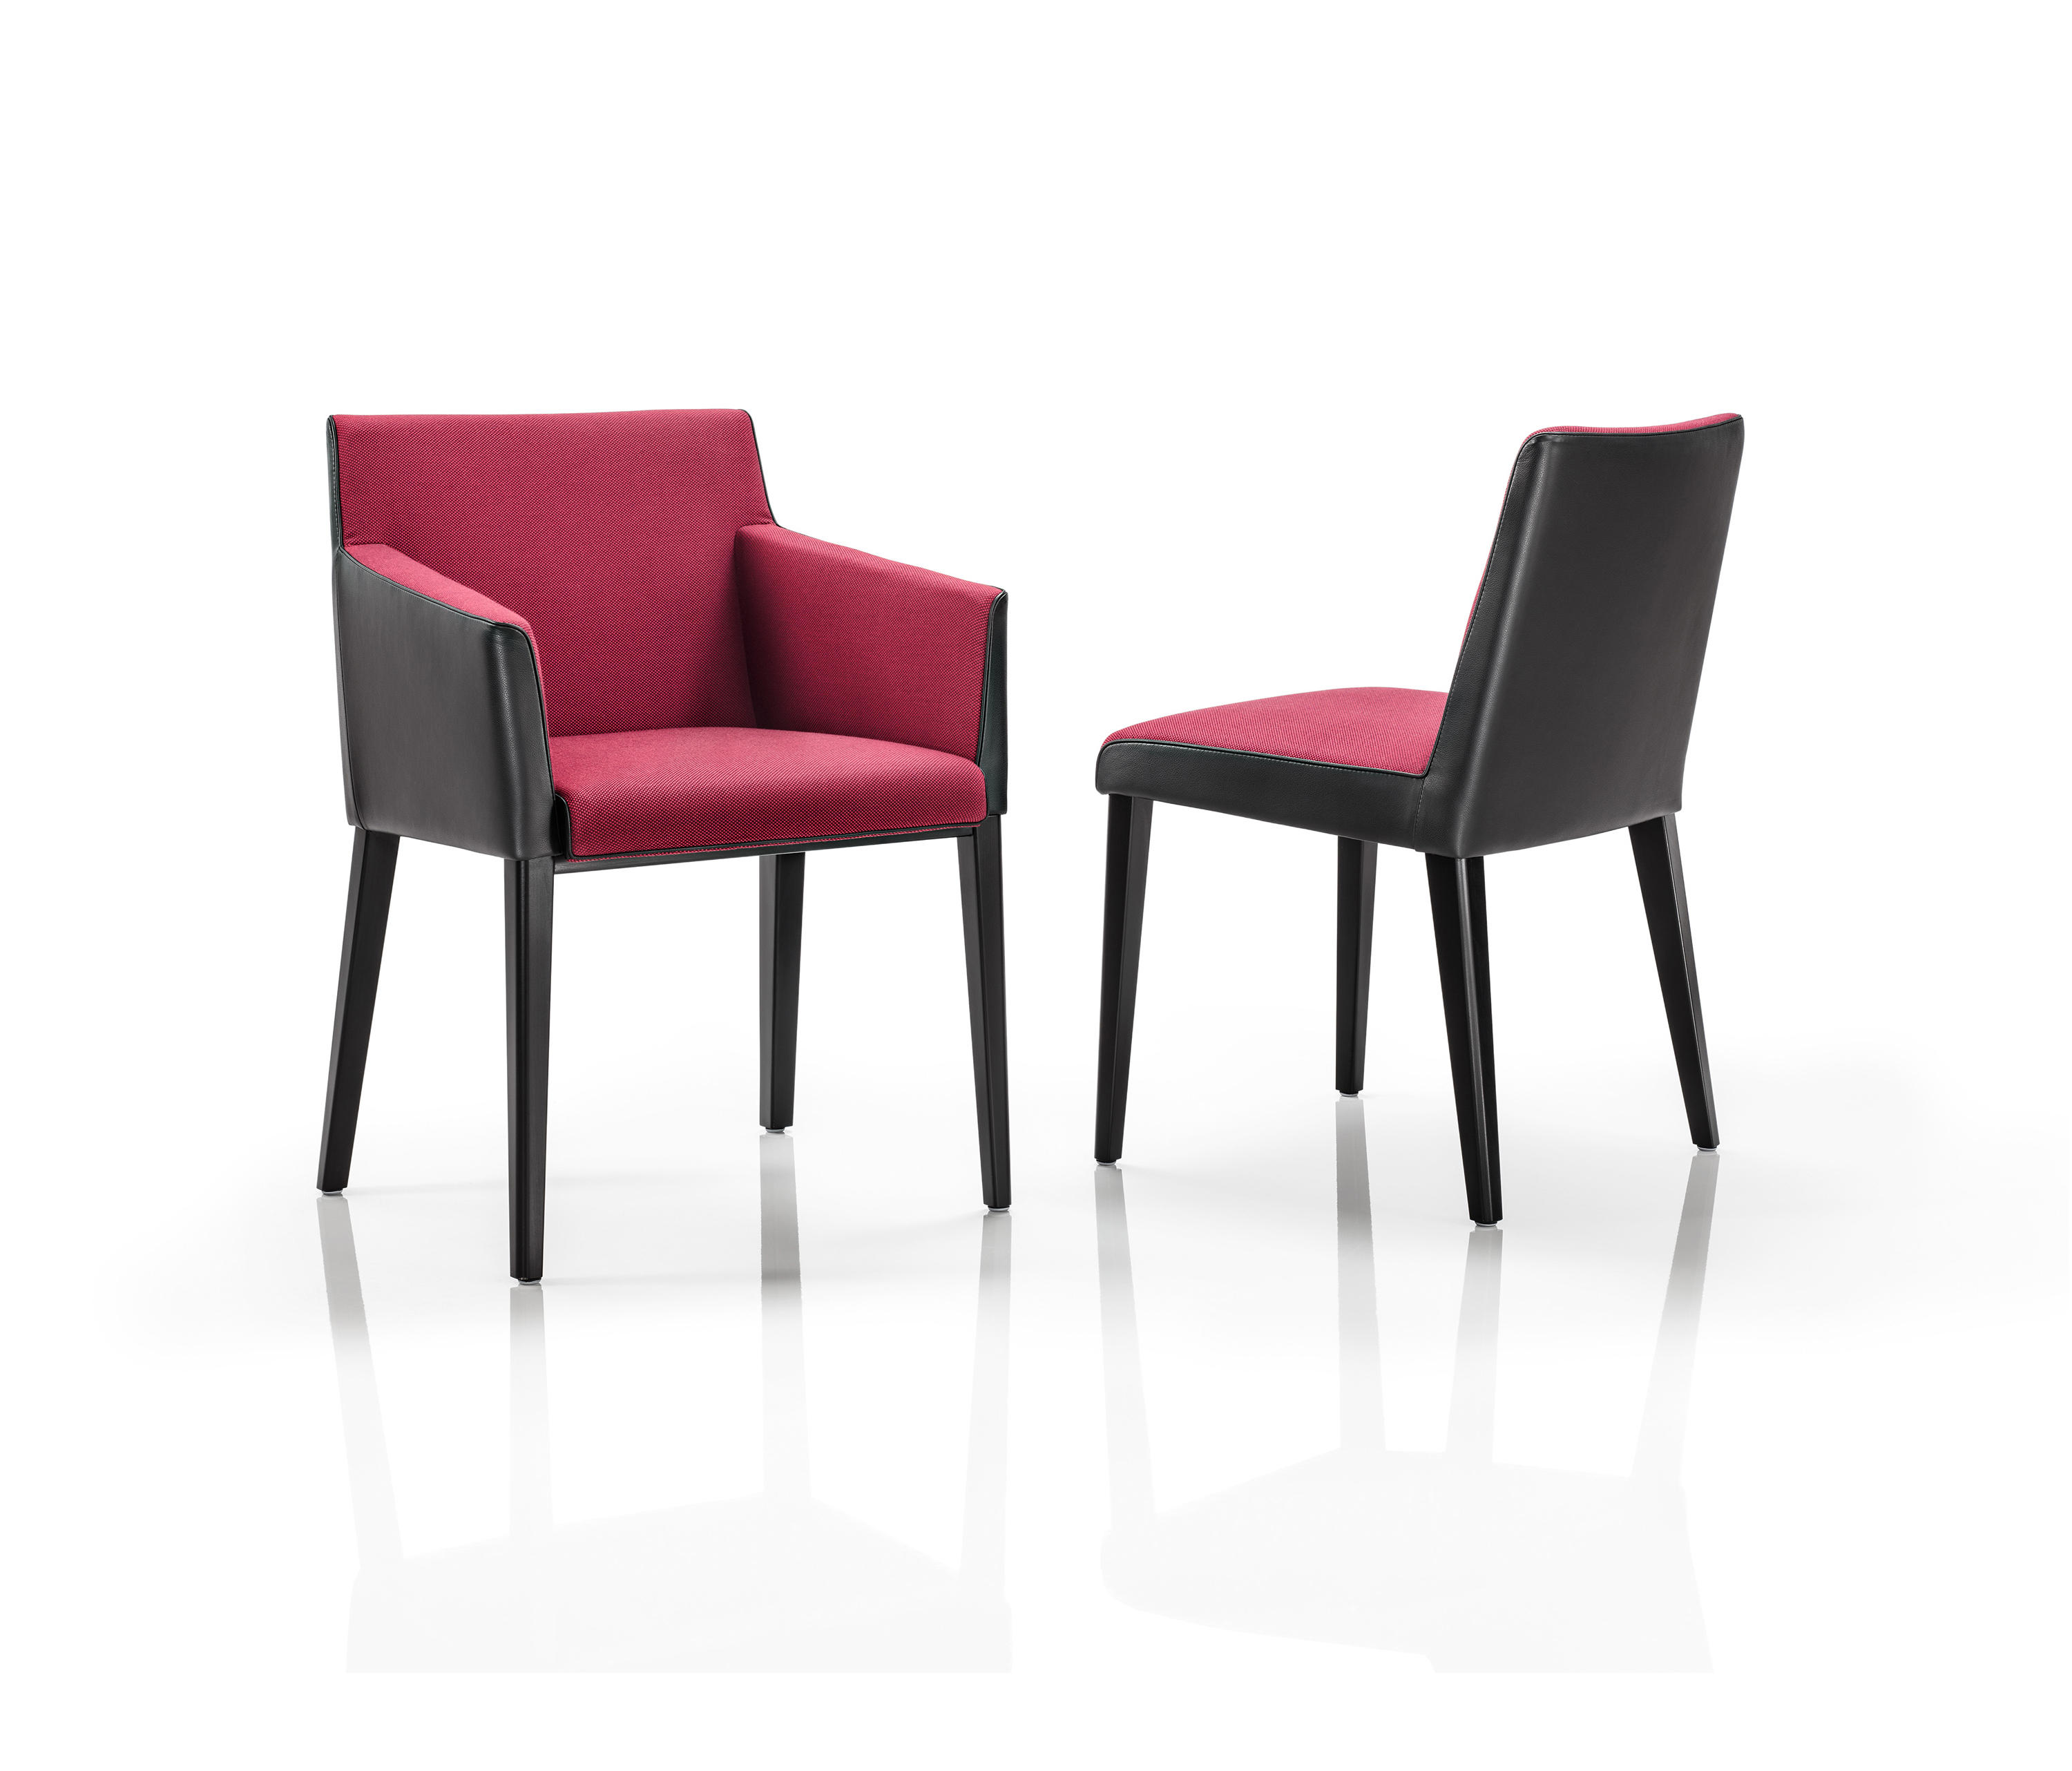 Stuhl William Chair Chairs From Wittmann Architonic